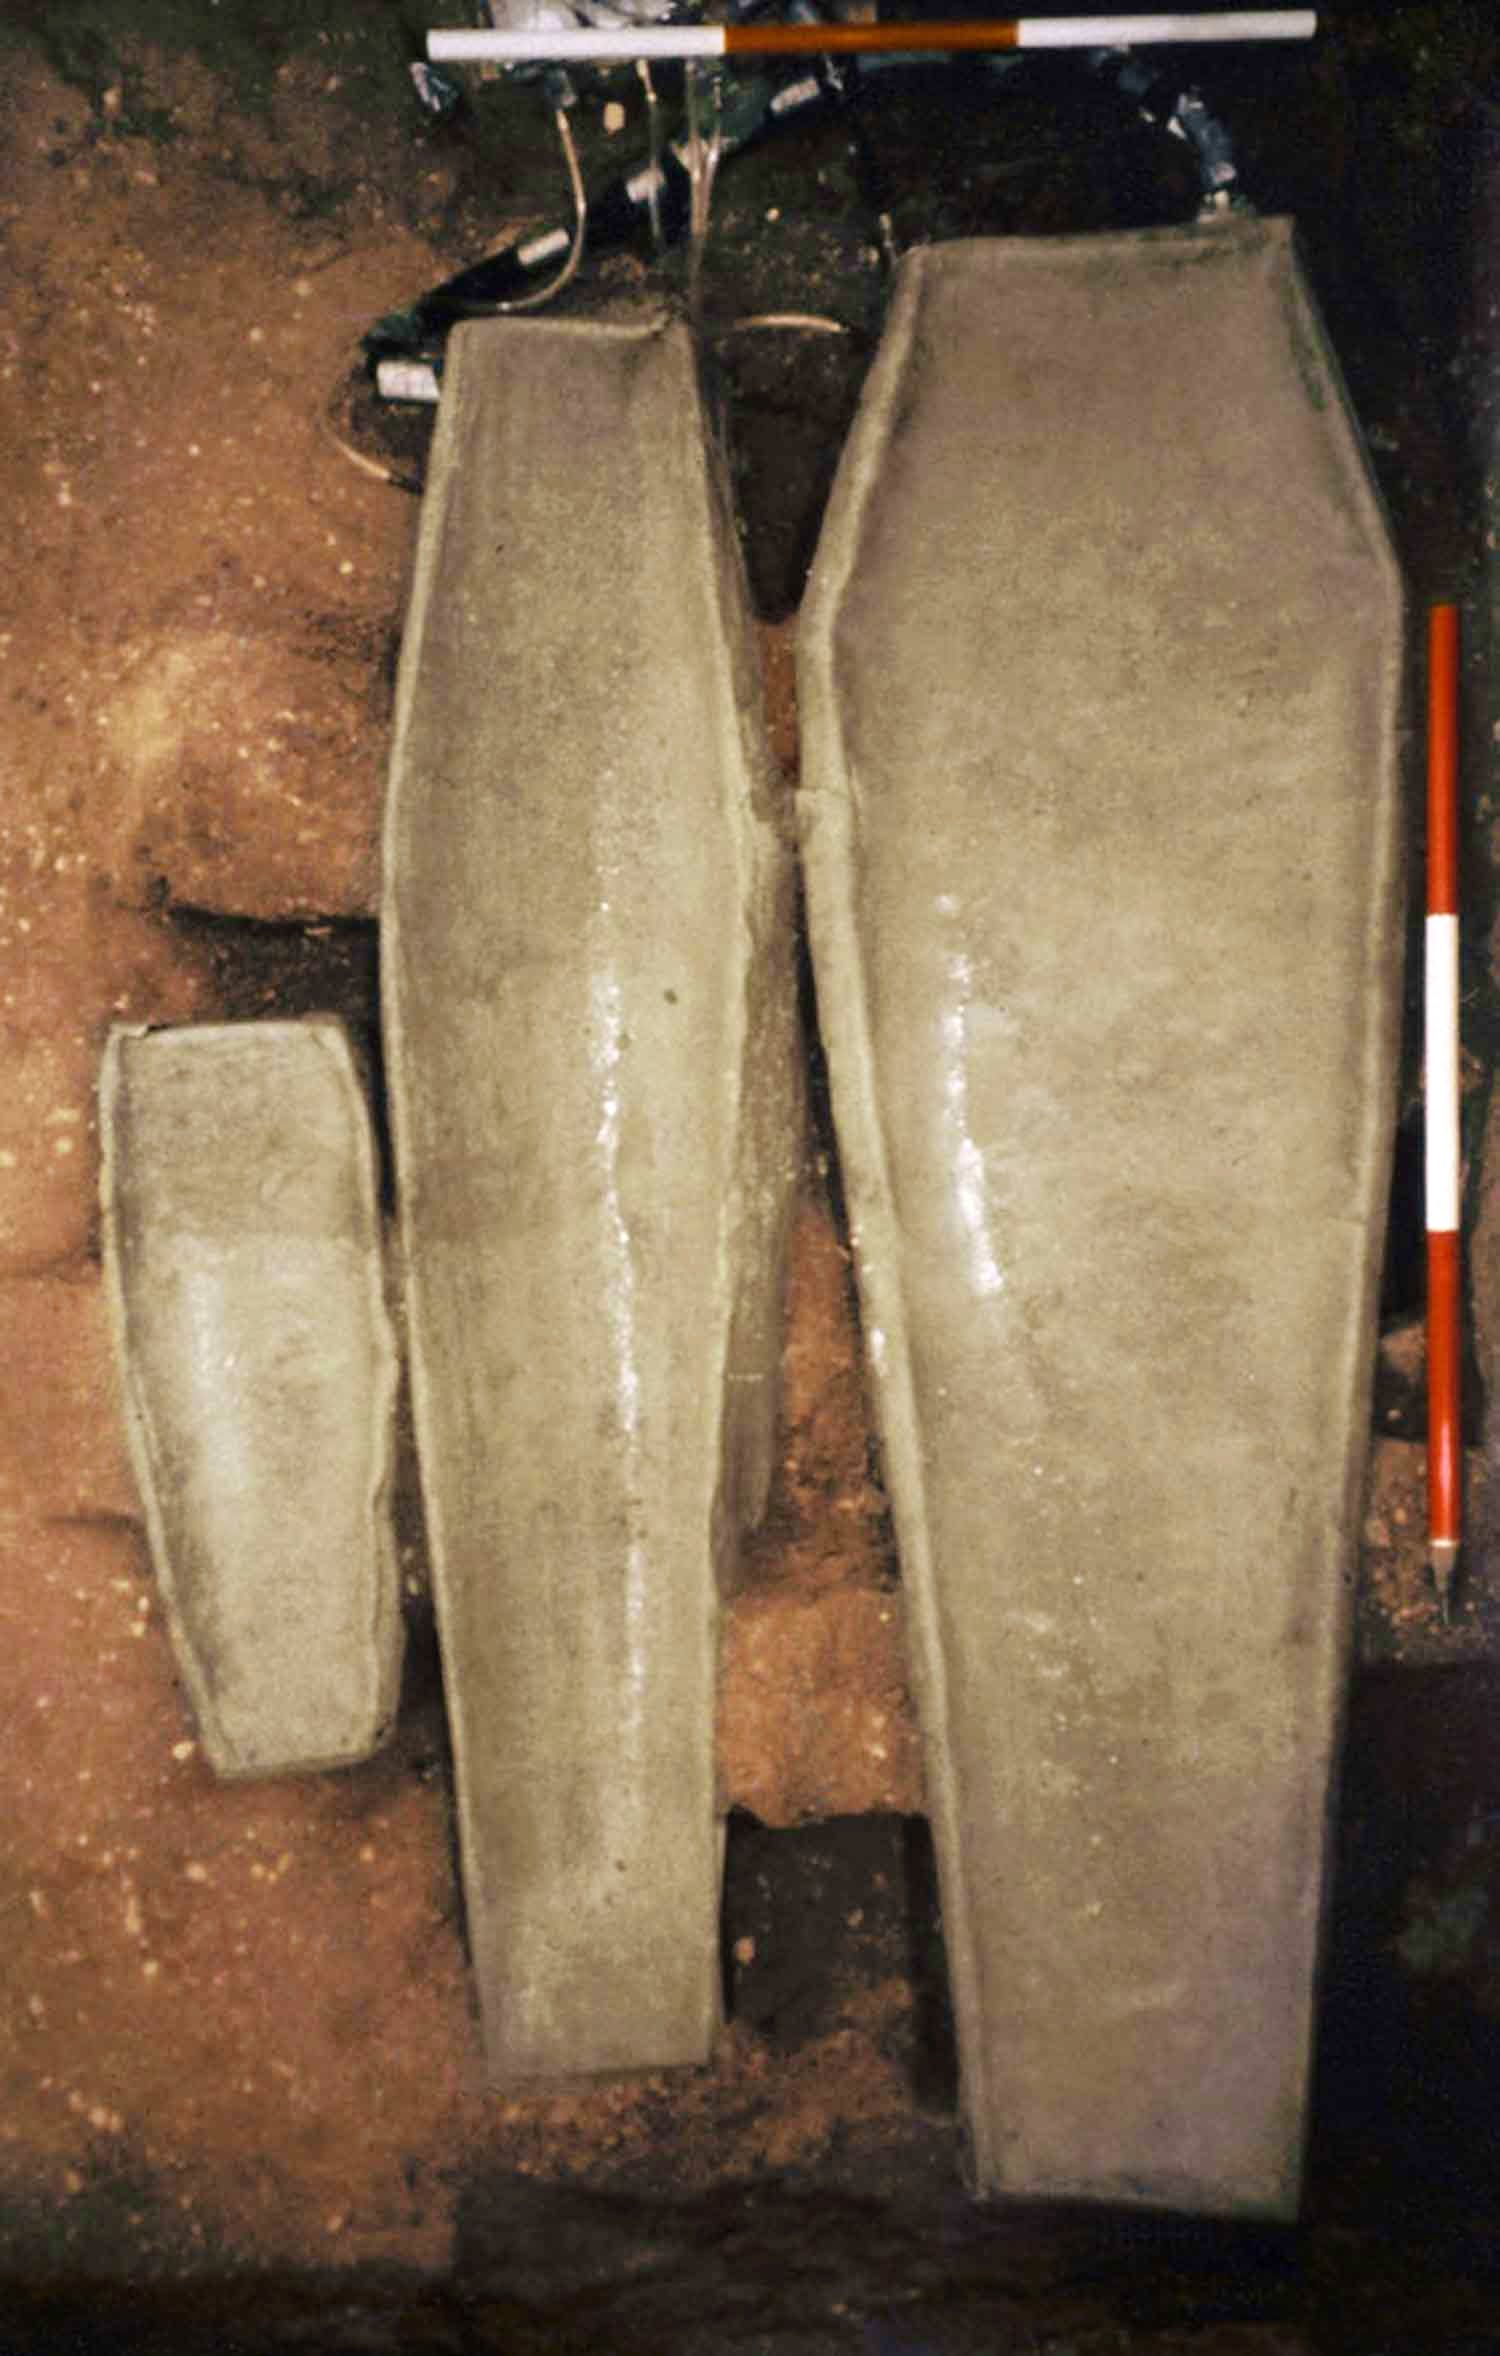 Three lead coffins discovered in the Brick Chapel